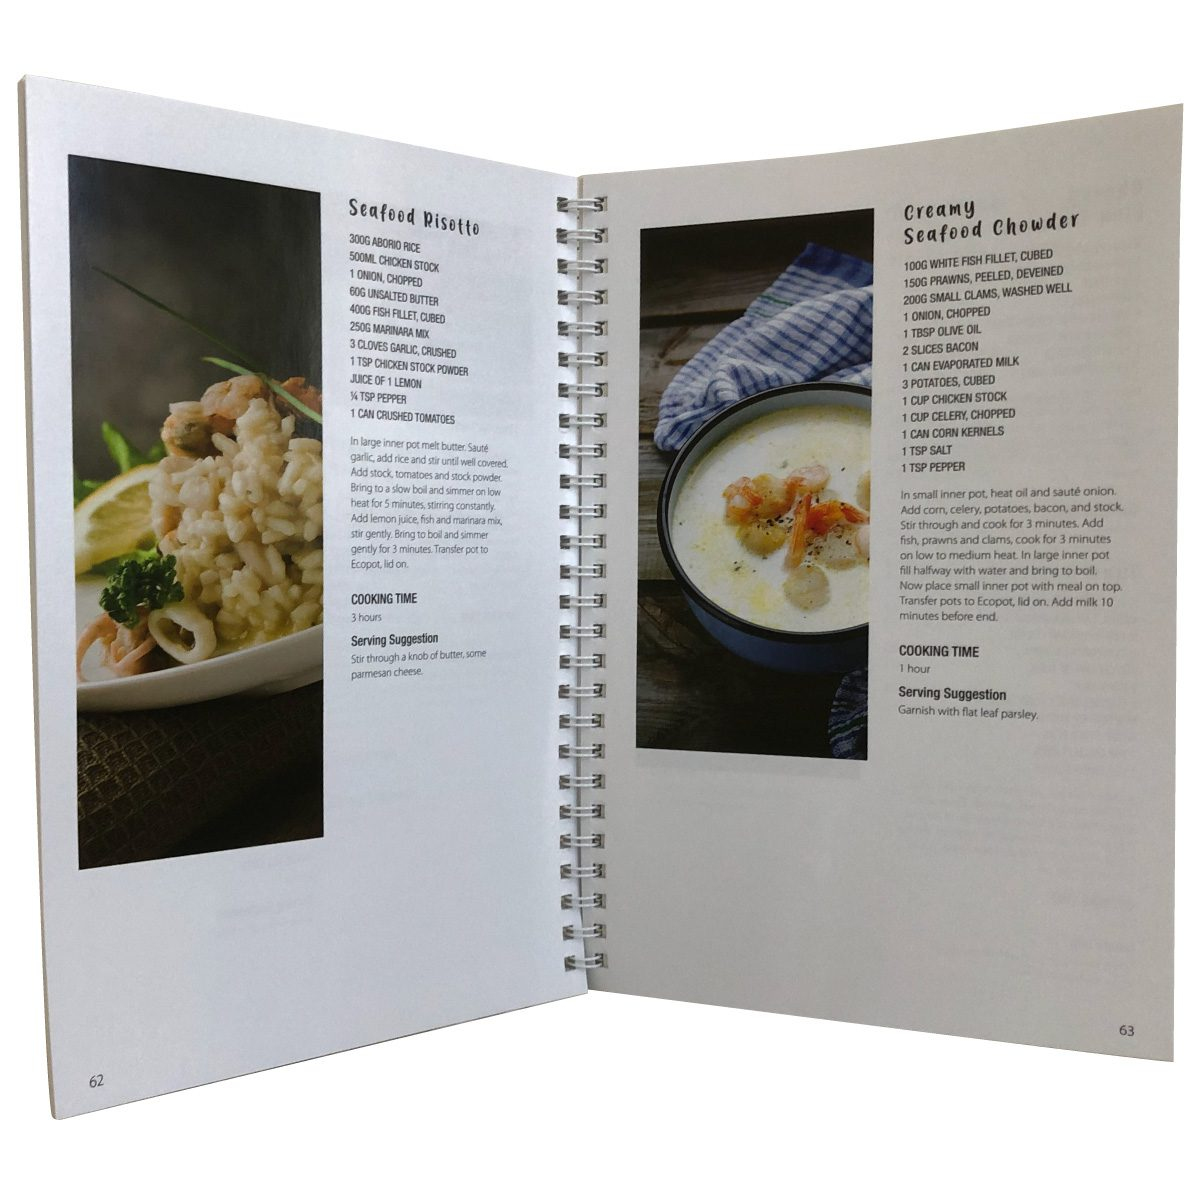 New Ecopot cookbook - full of great recipes